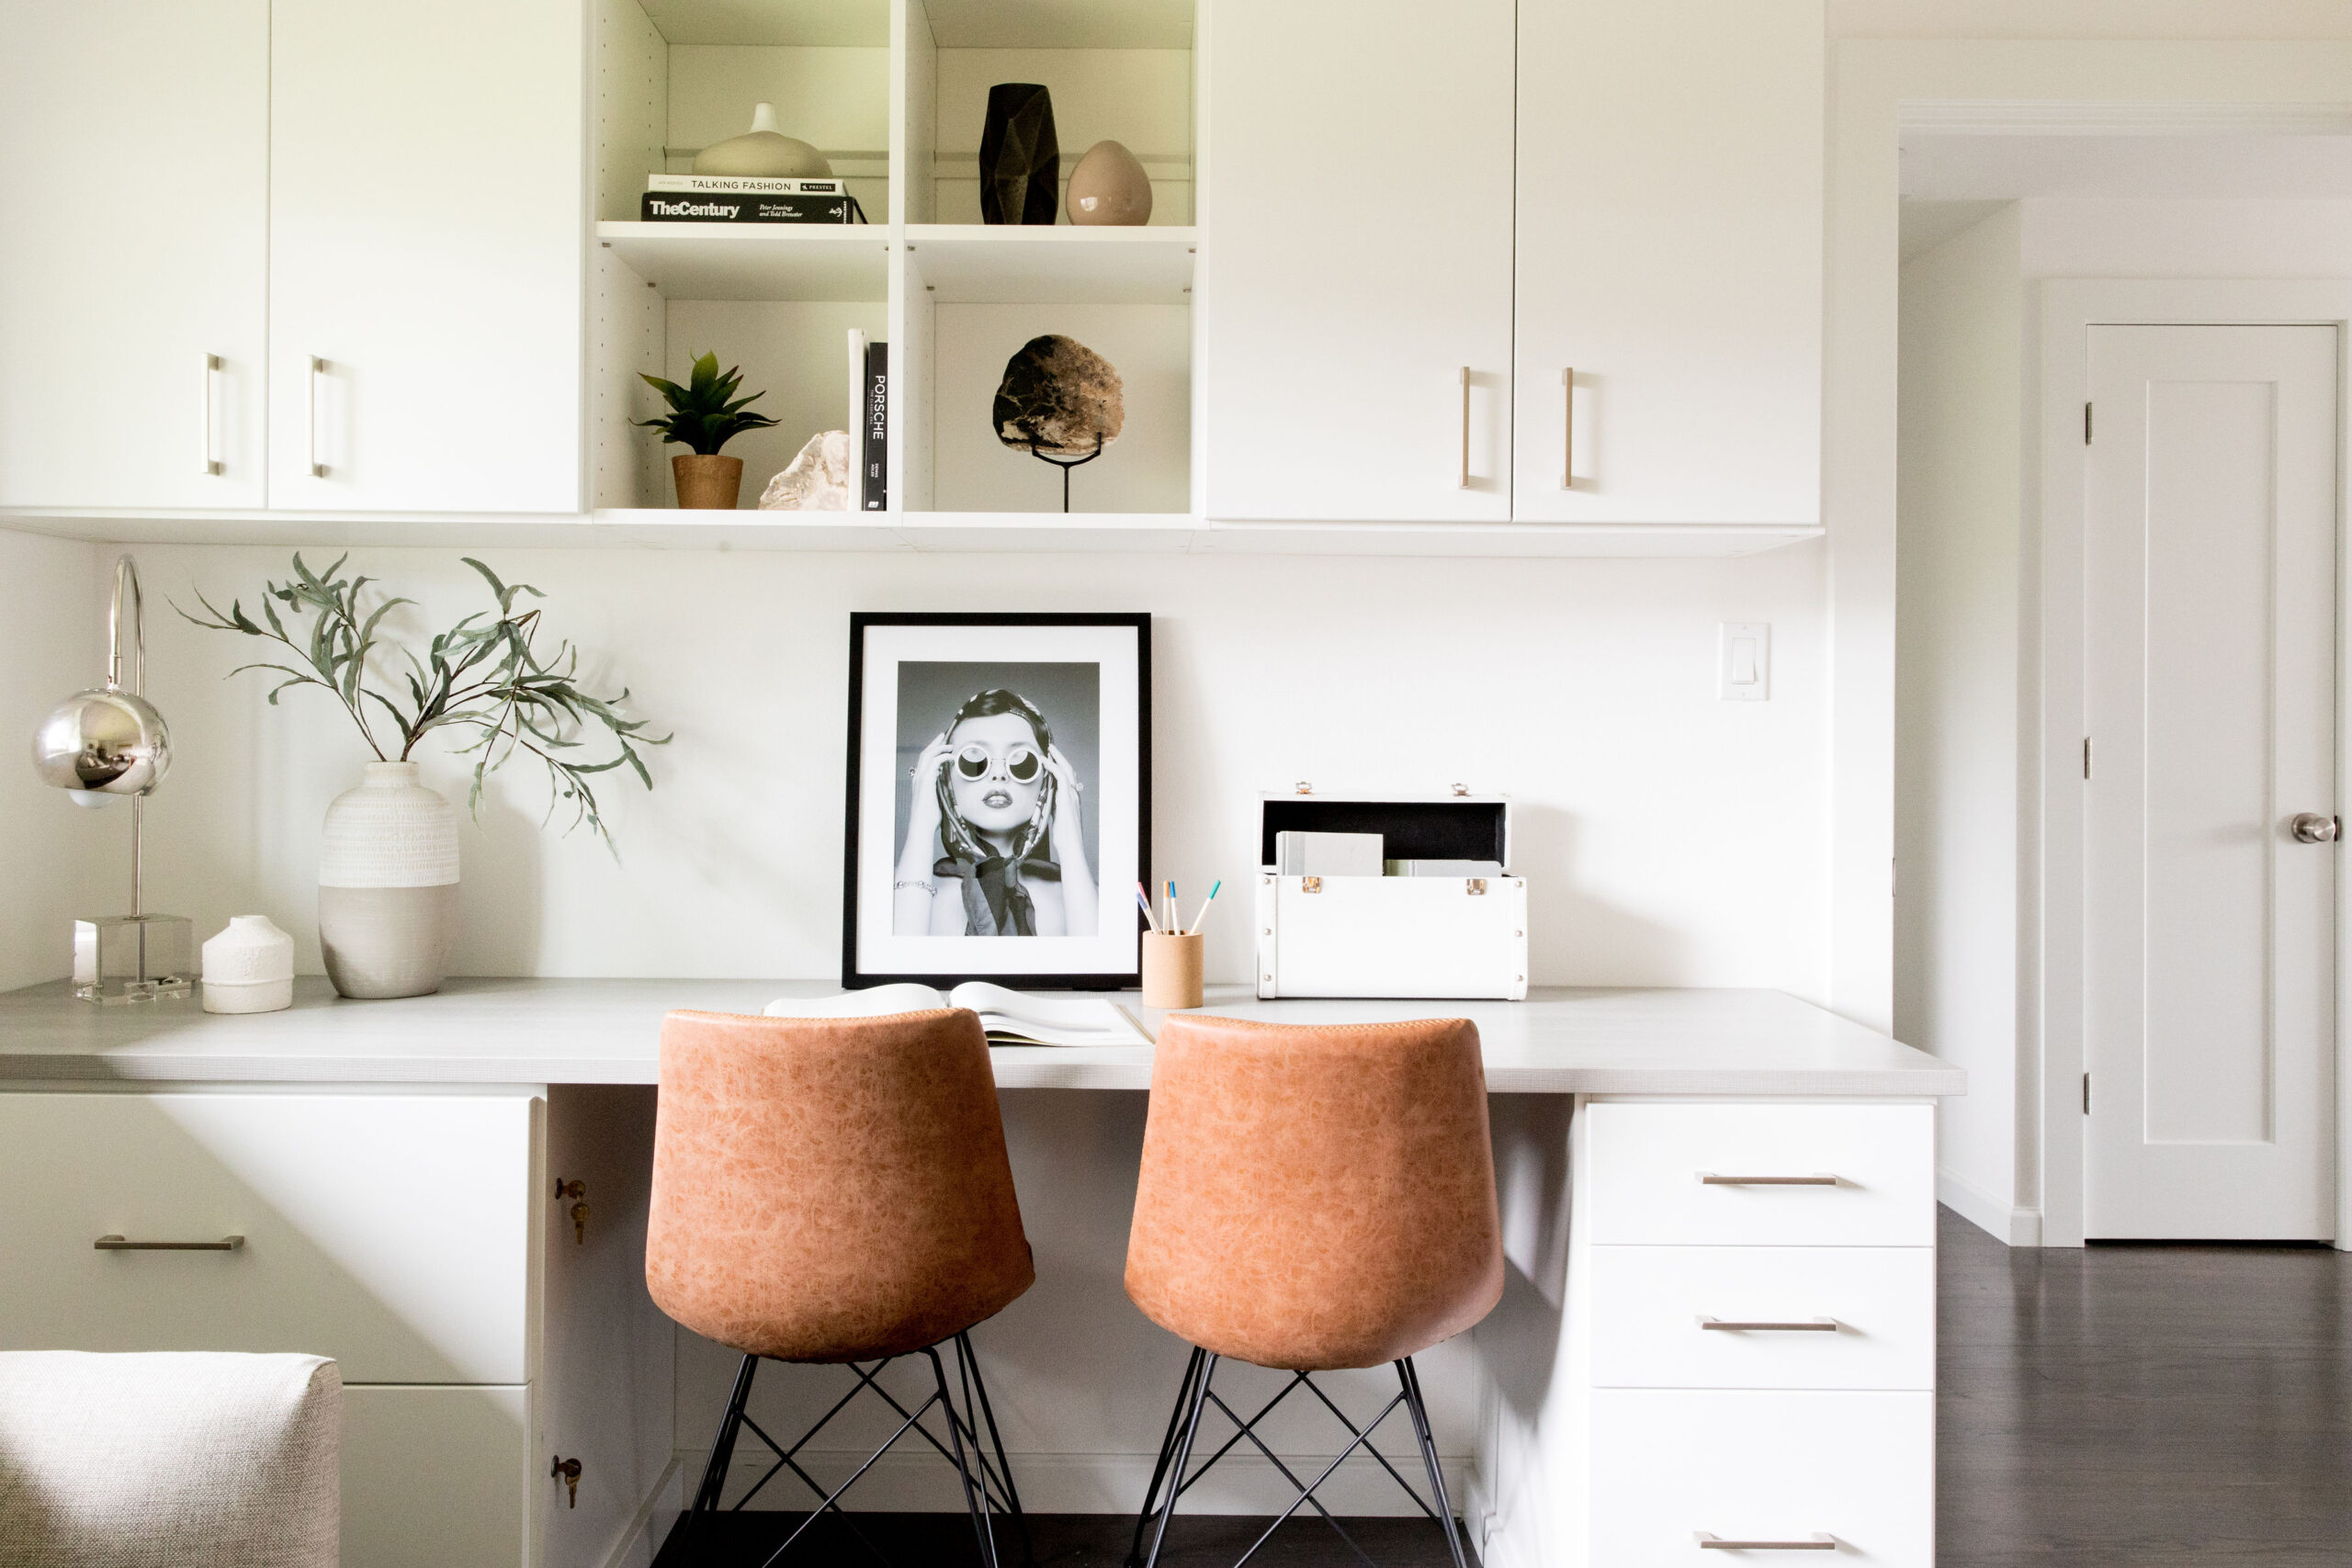 Urban Domain is a boutique home staging and interior design firm providing exceptional design services to Seattle's Eastside, Seattle, Bellevue, Sammamish, Medina, Kirkland, Tacoma. Our signature clean, urban aesthetic and sophisticated style embody the PNW lifestyle and modern living.